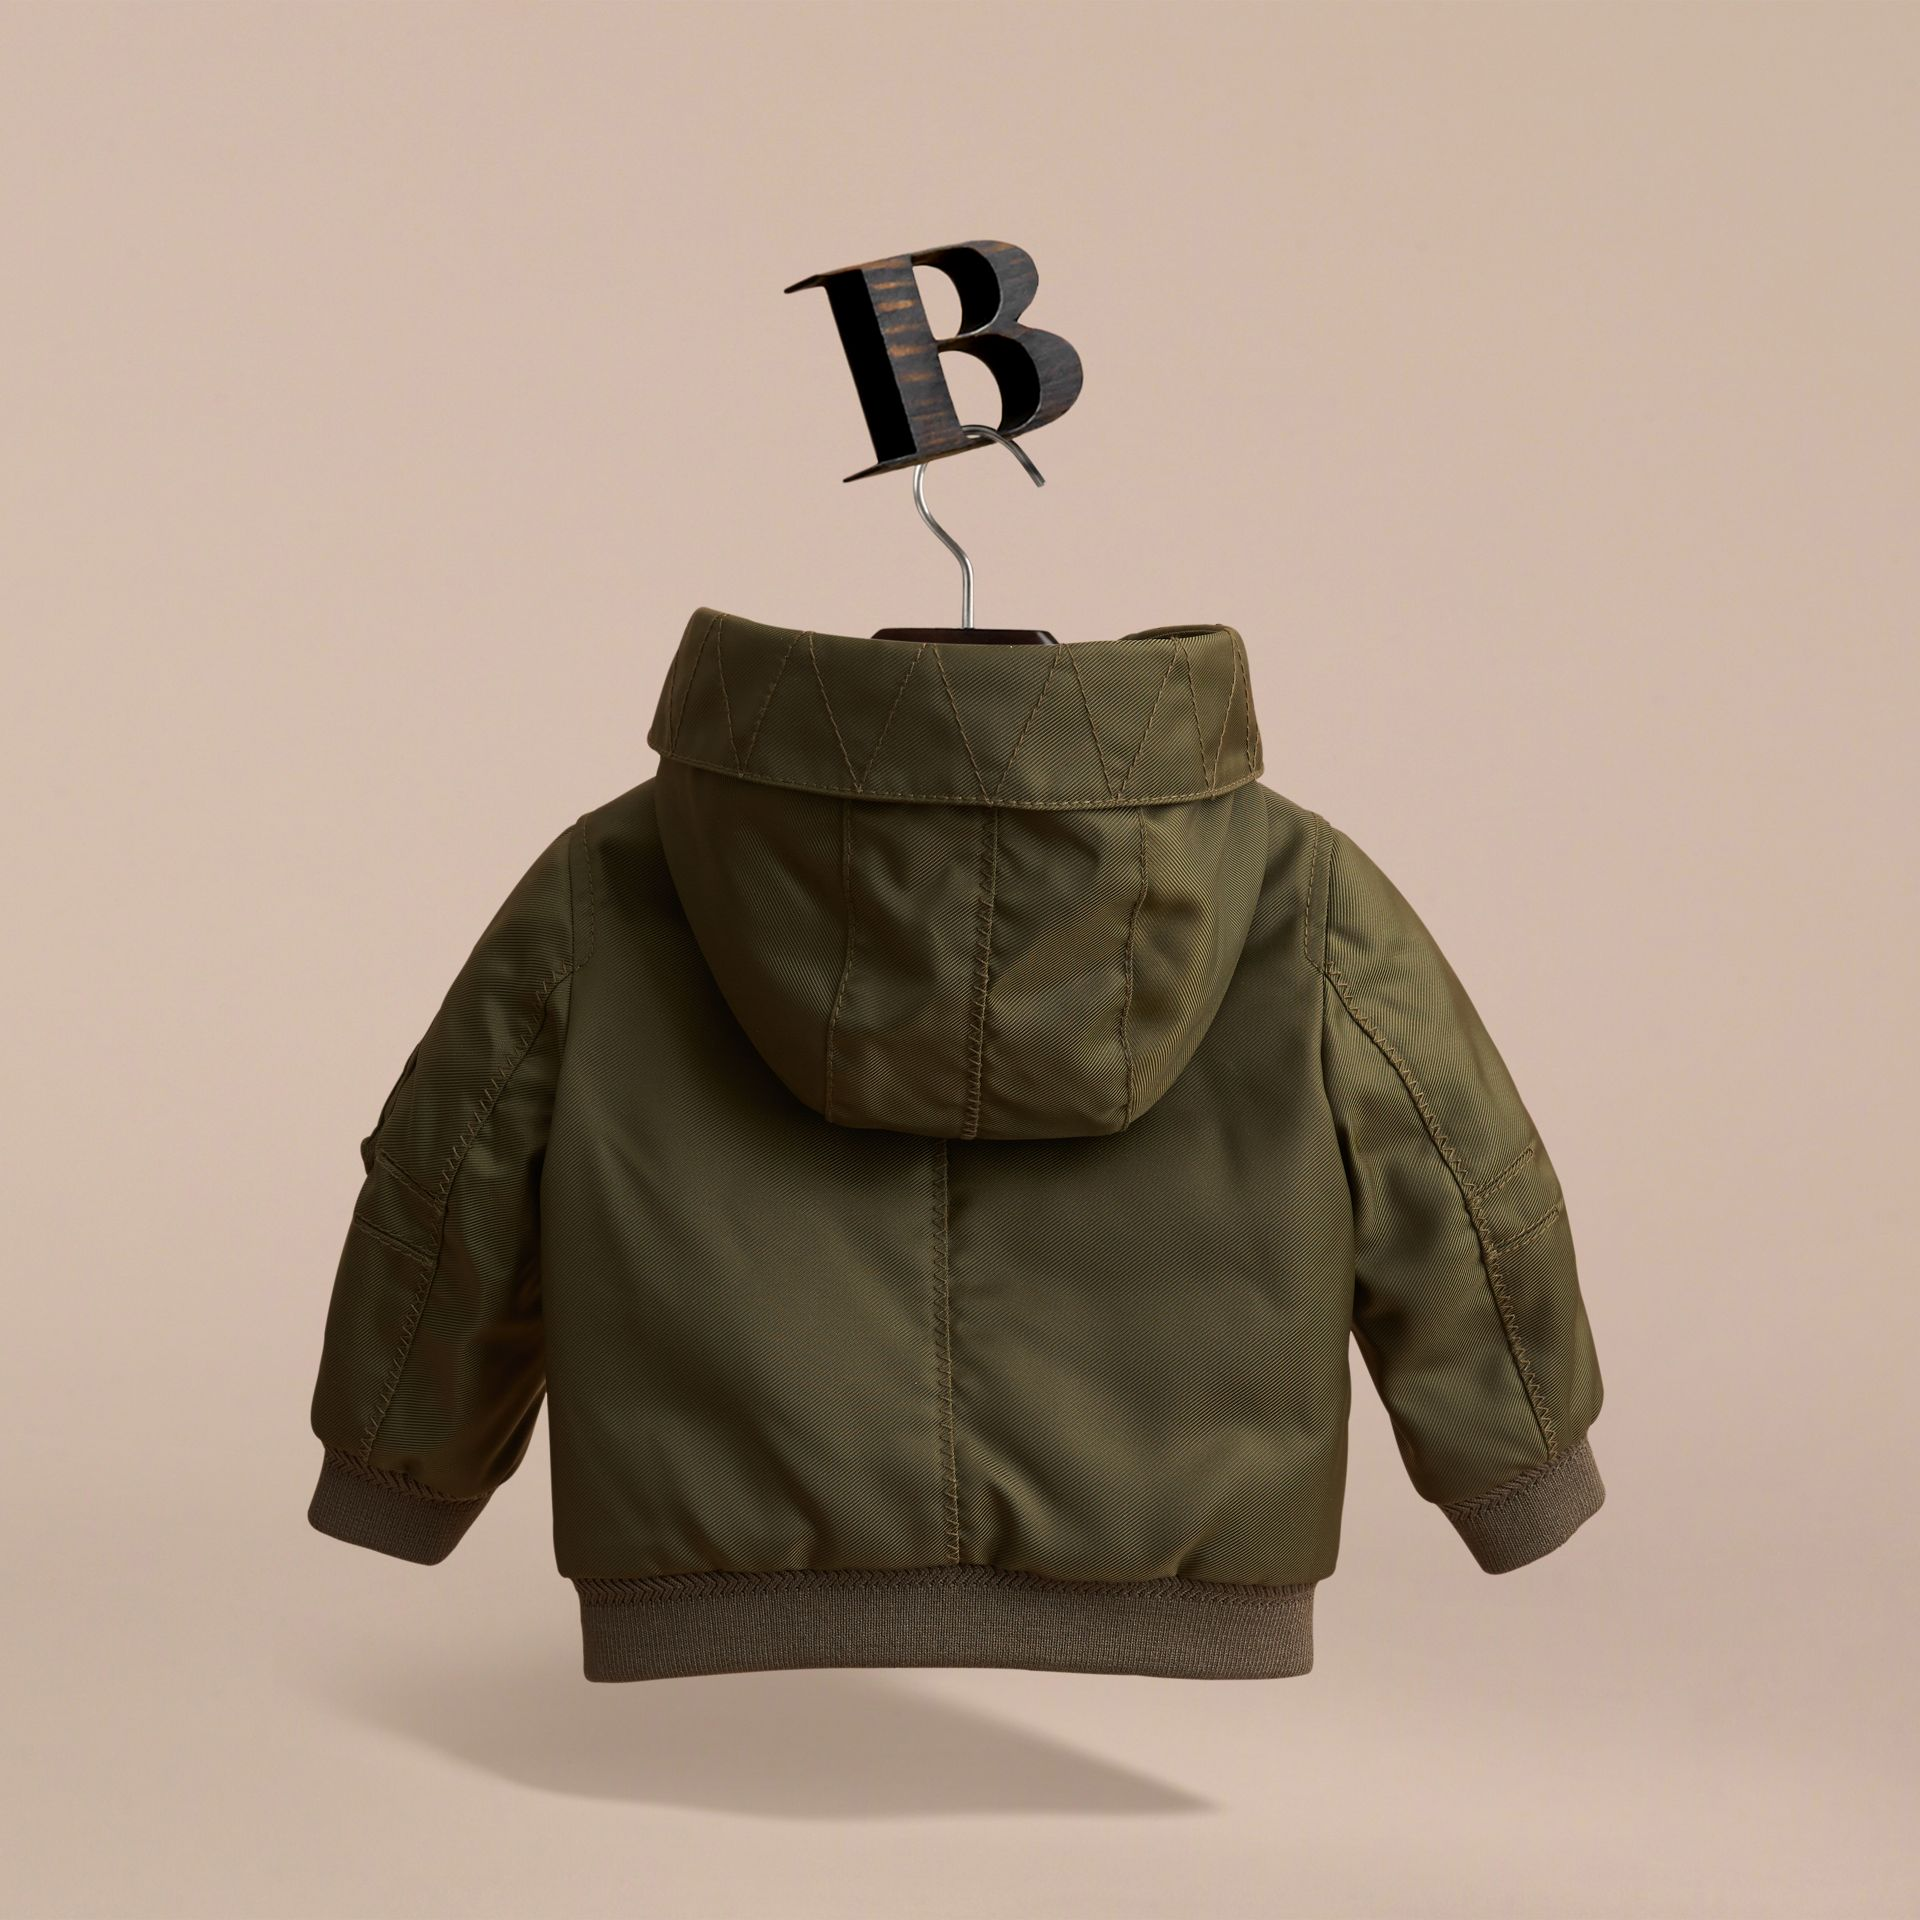 Veste Bomber à capuche en sergé technique | Burberry - photo de la galerie 4